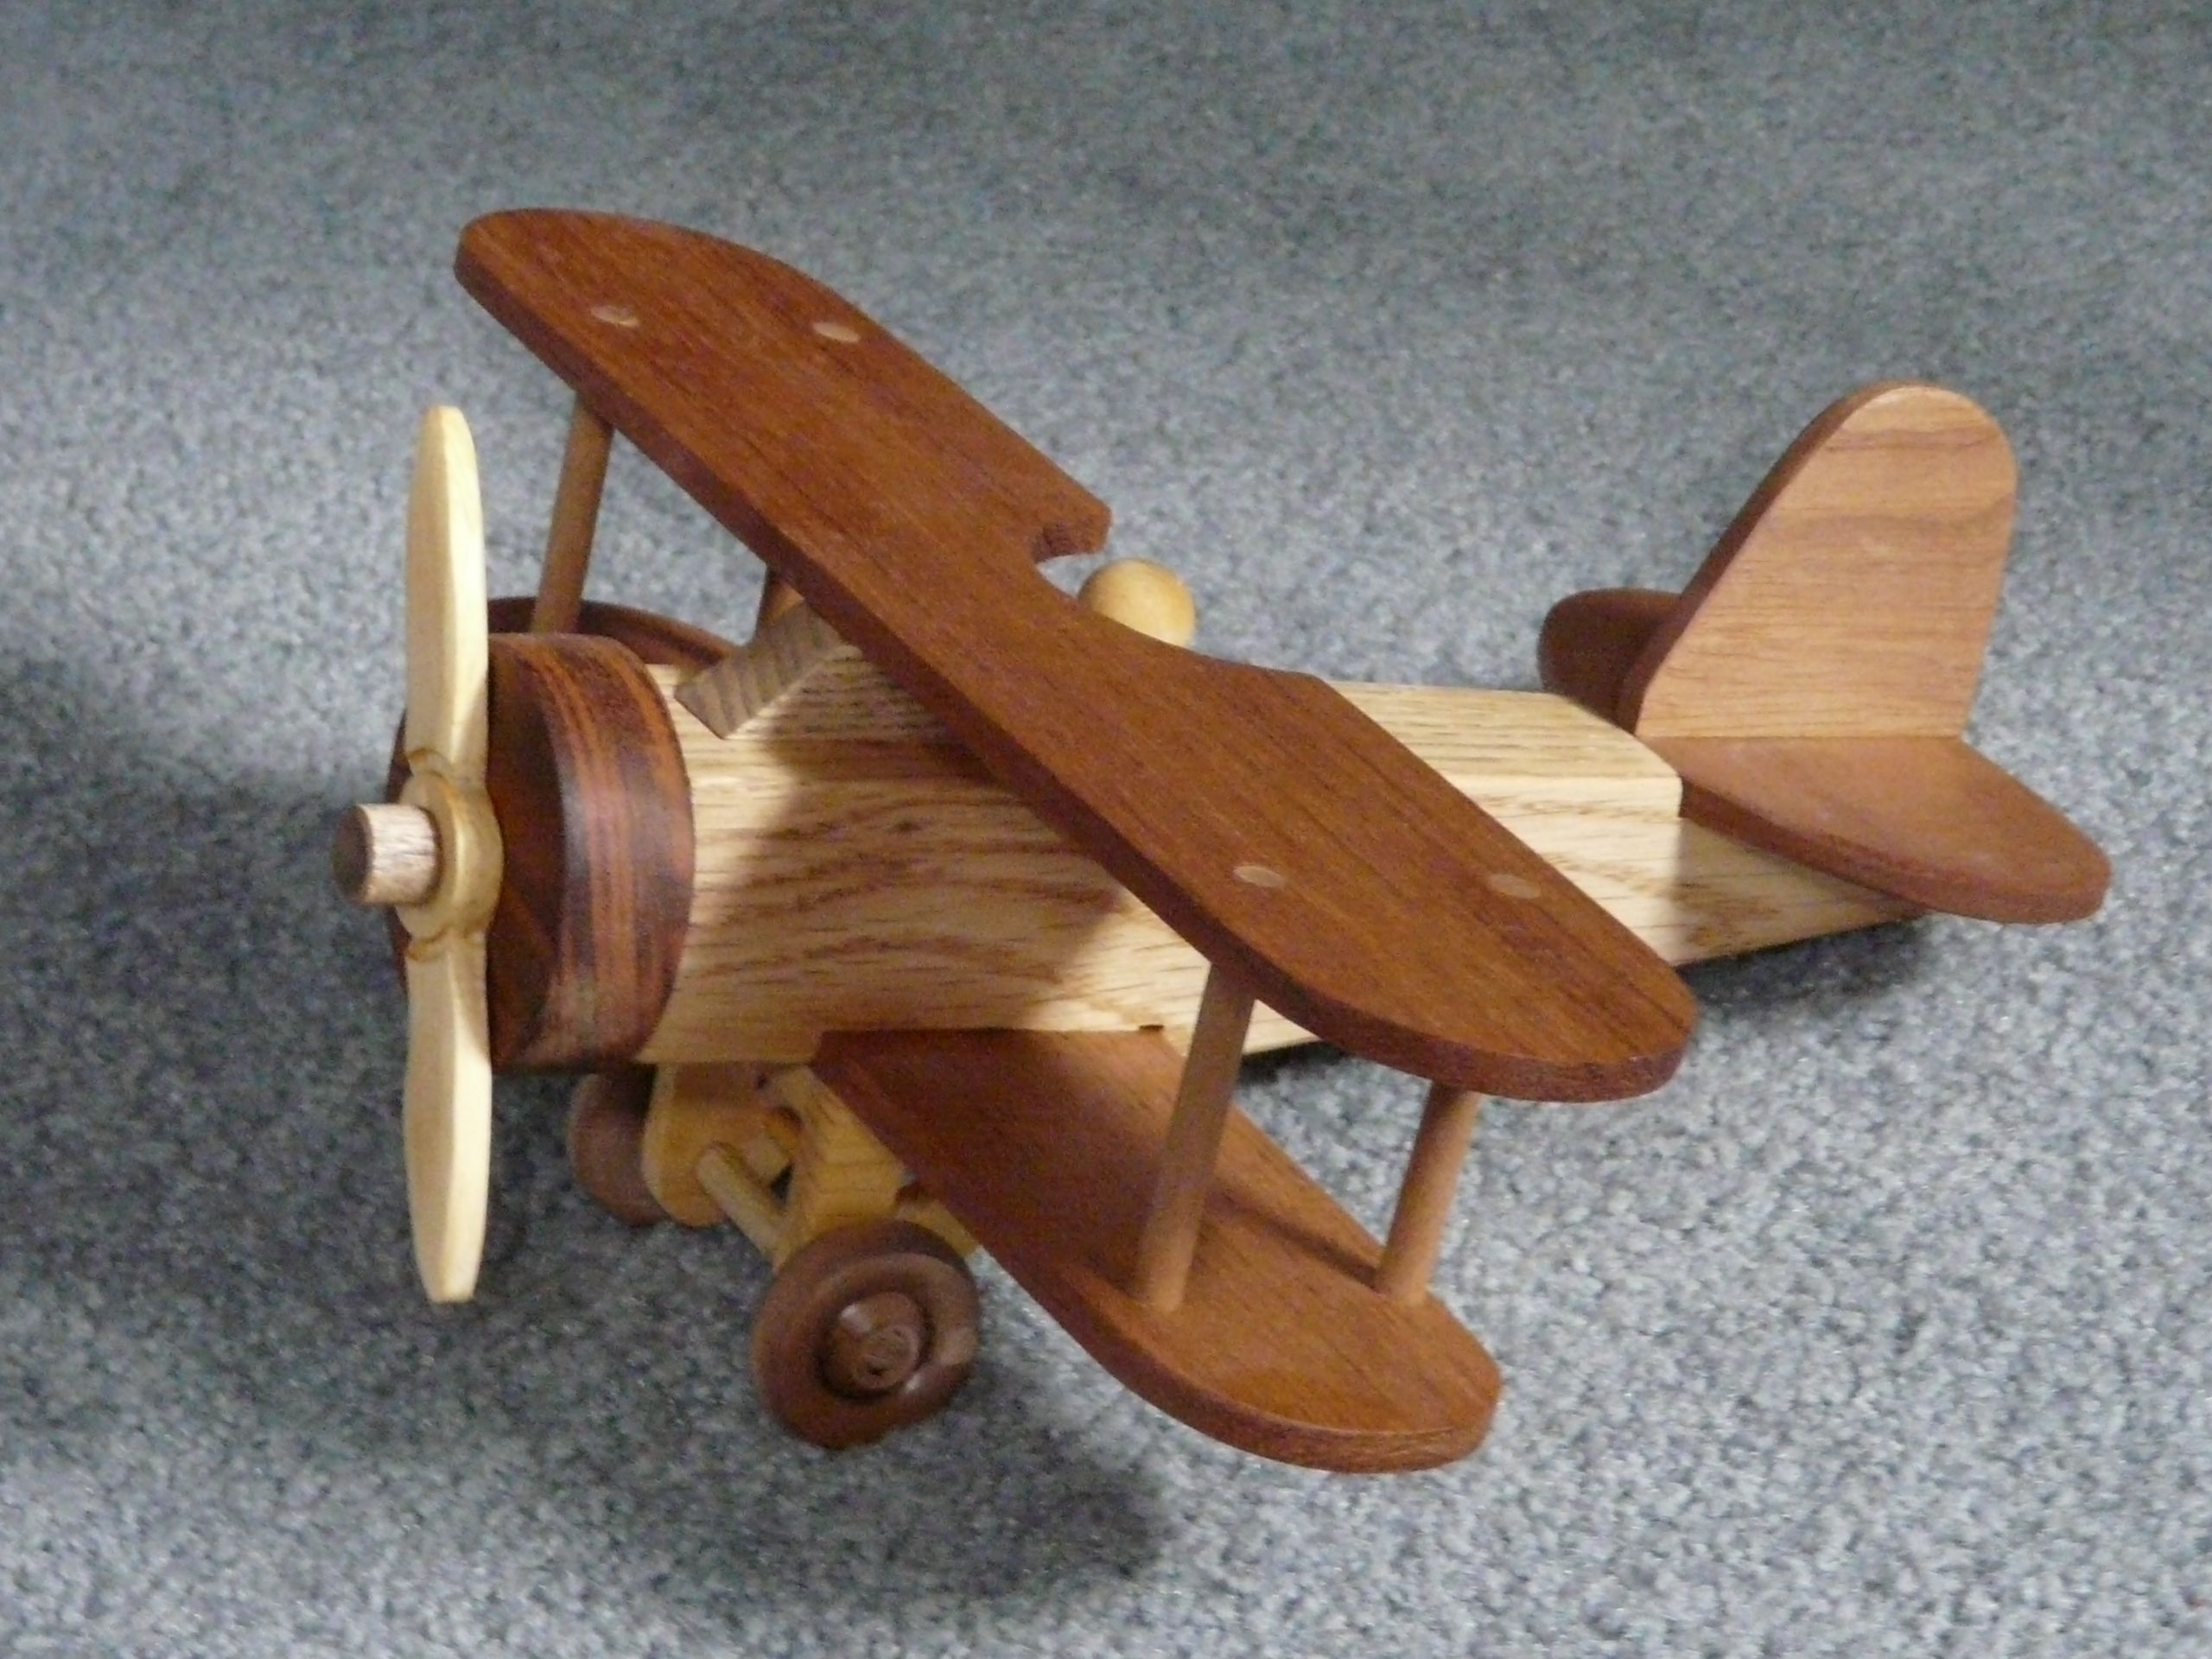 wooden trucks, cars and airplanes | posted in wooden toys